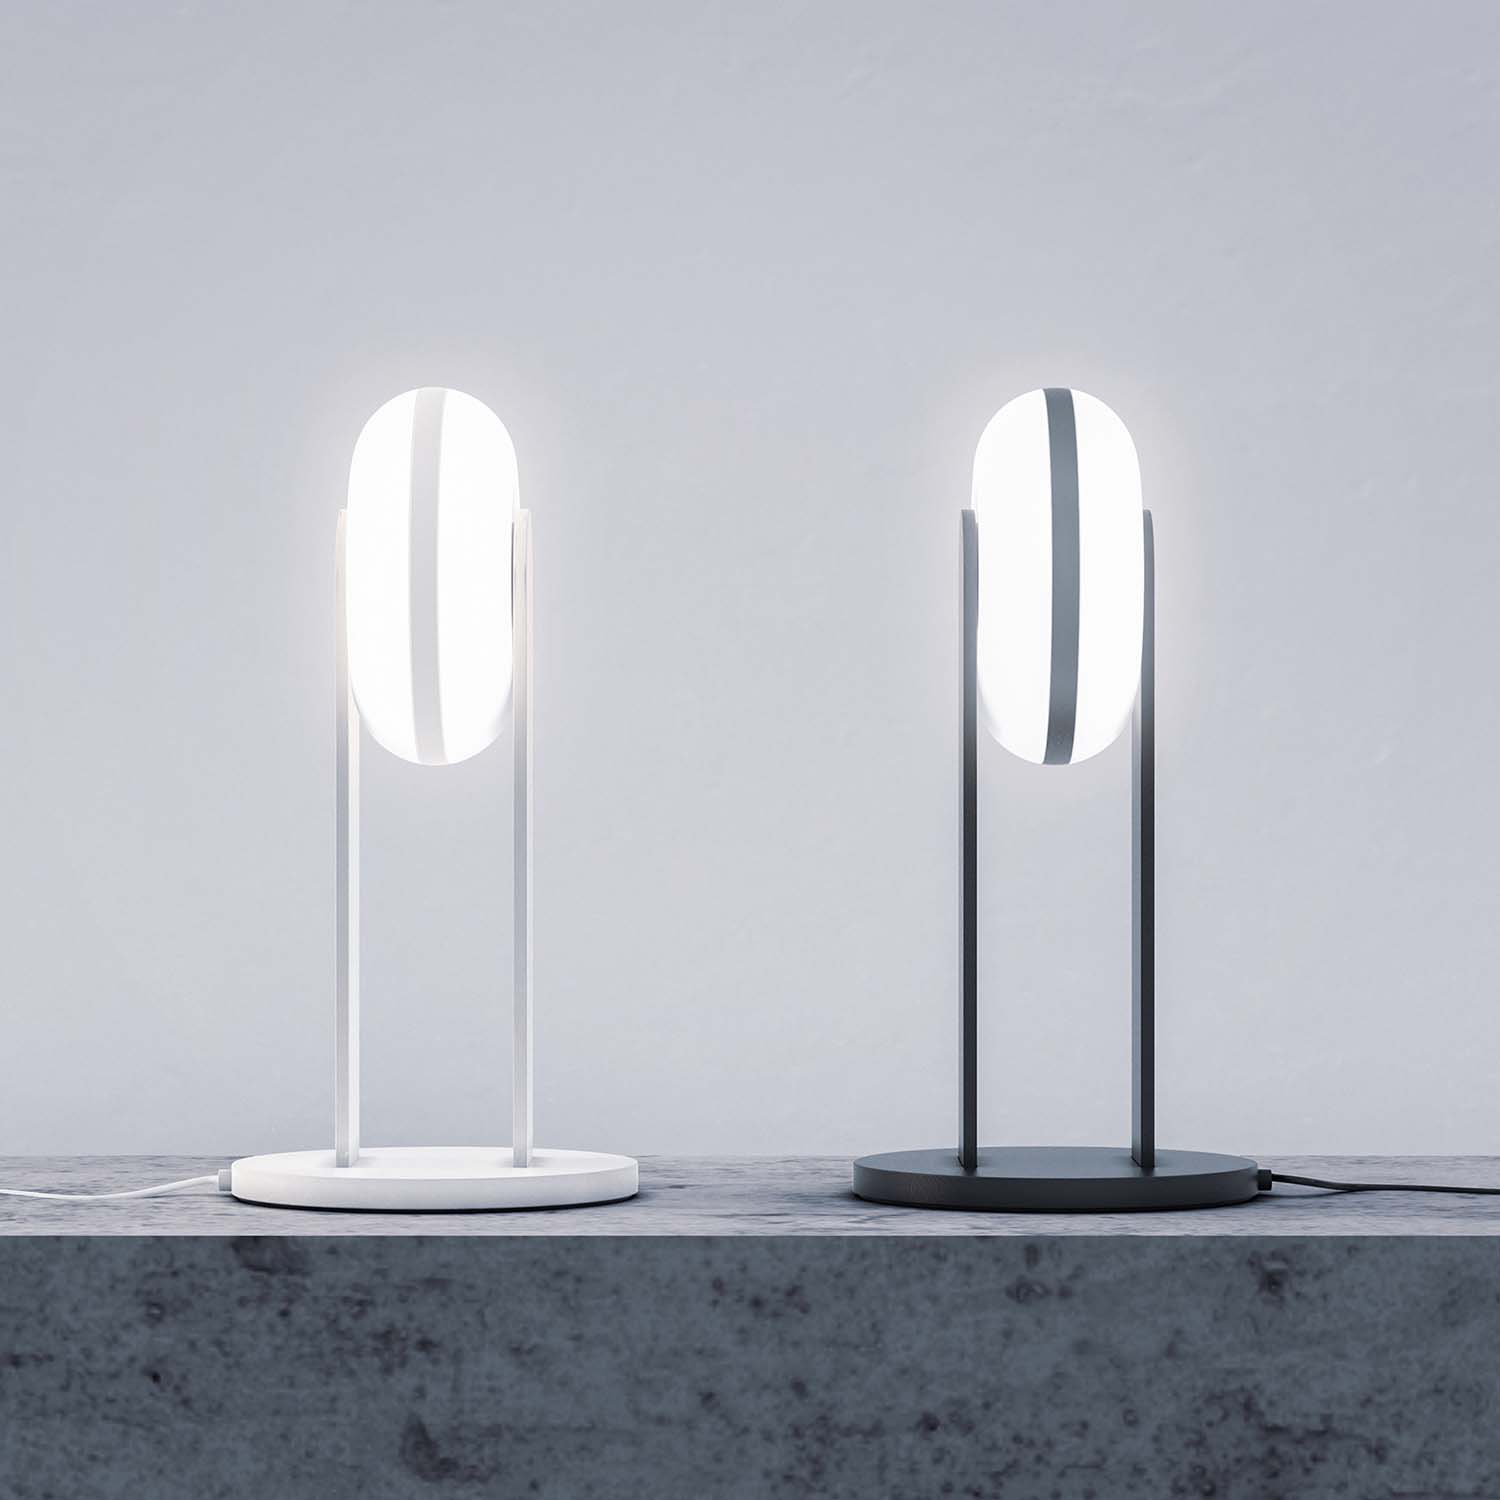 Donut Lamp by Xingchen Pan is Winner in Lighting Products and Lighting Projects Design Category, 2020 - 2021.